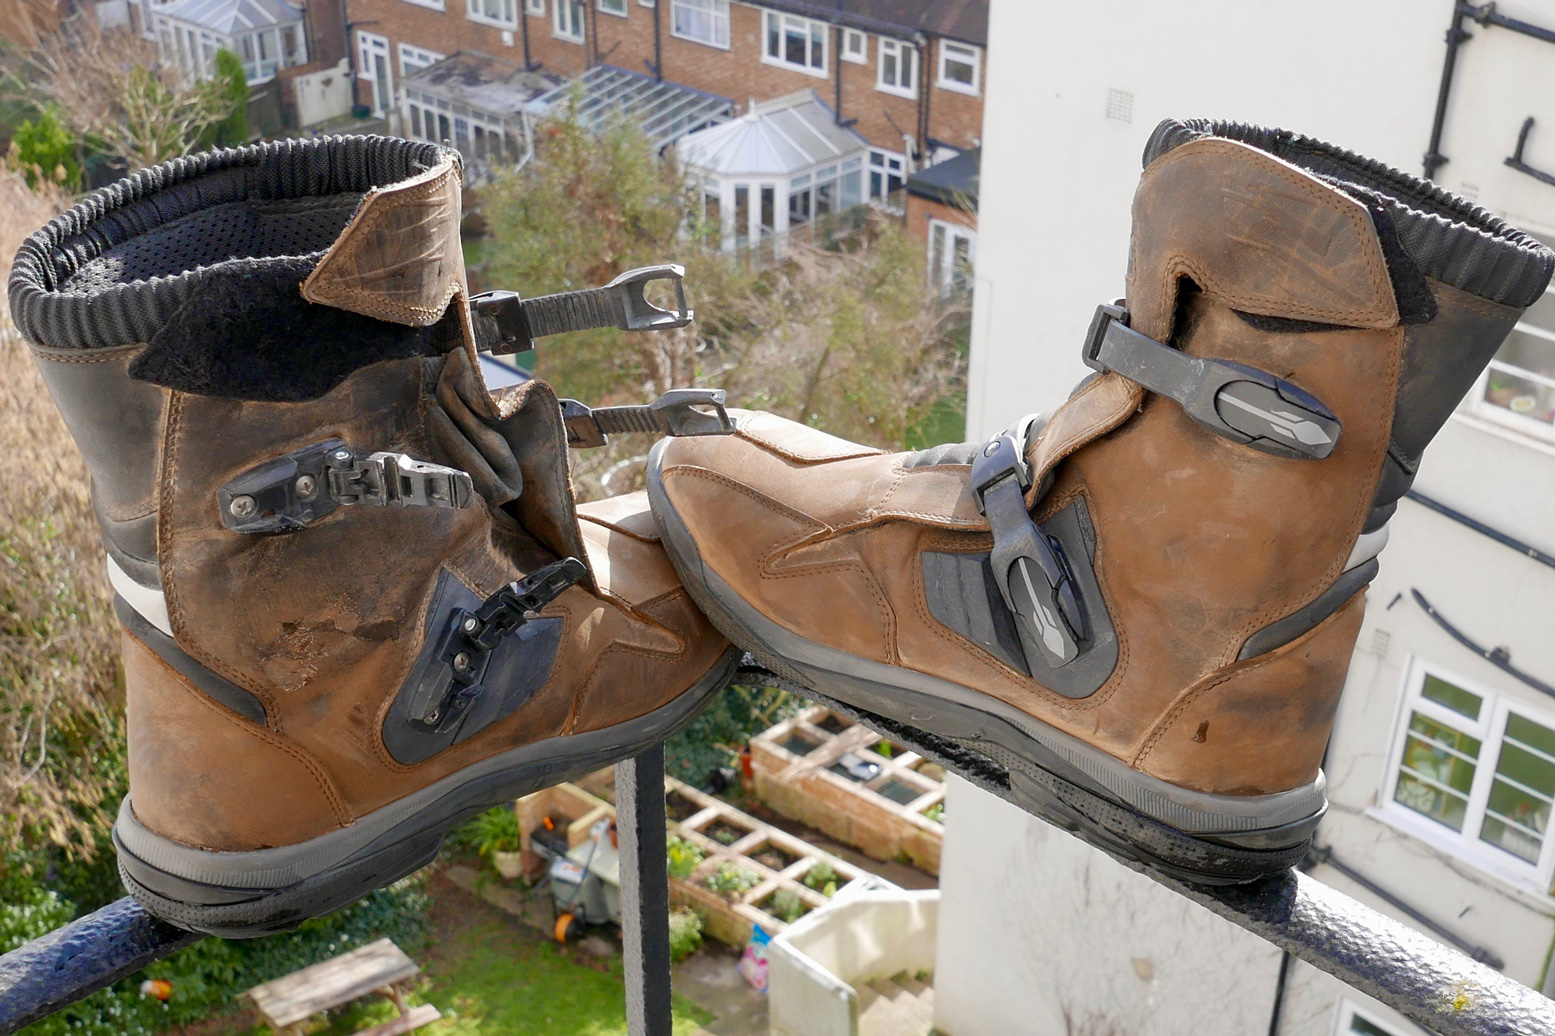 Tested: TCX Baja Mid boots in the